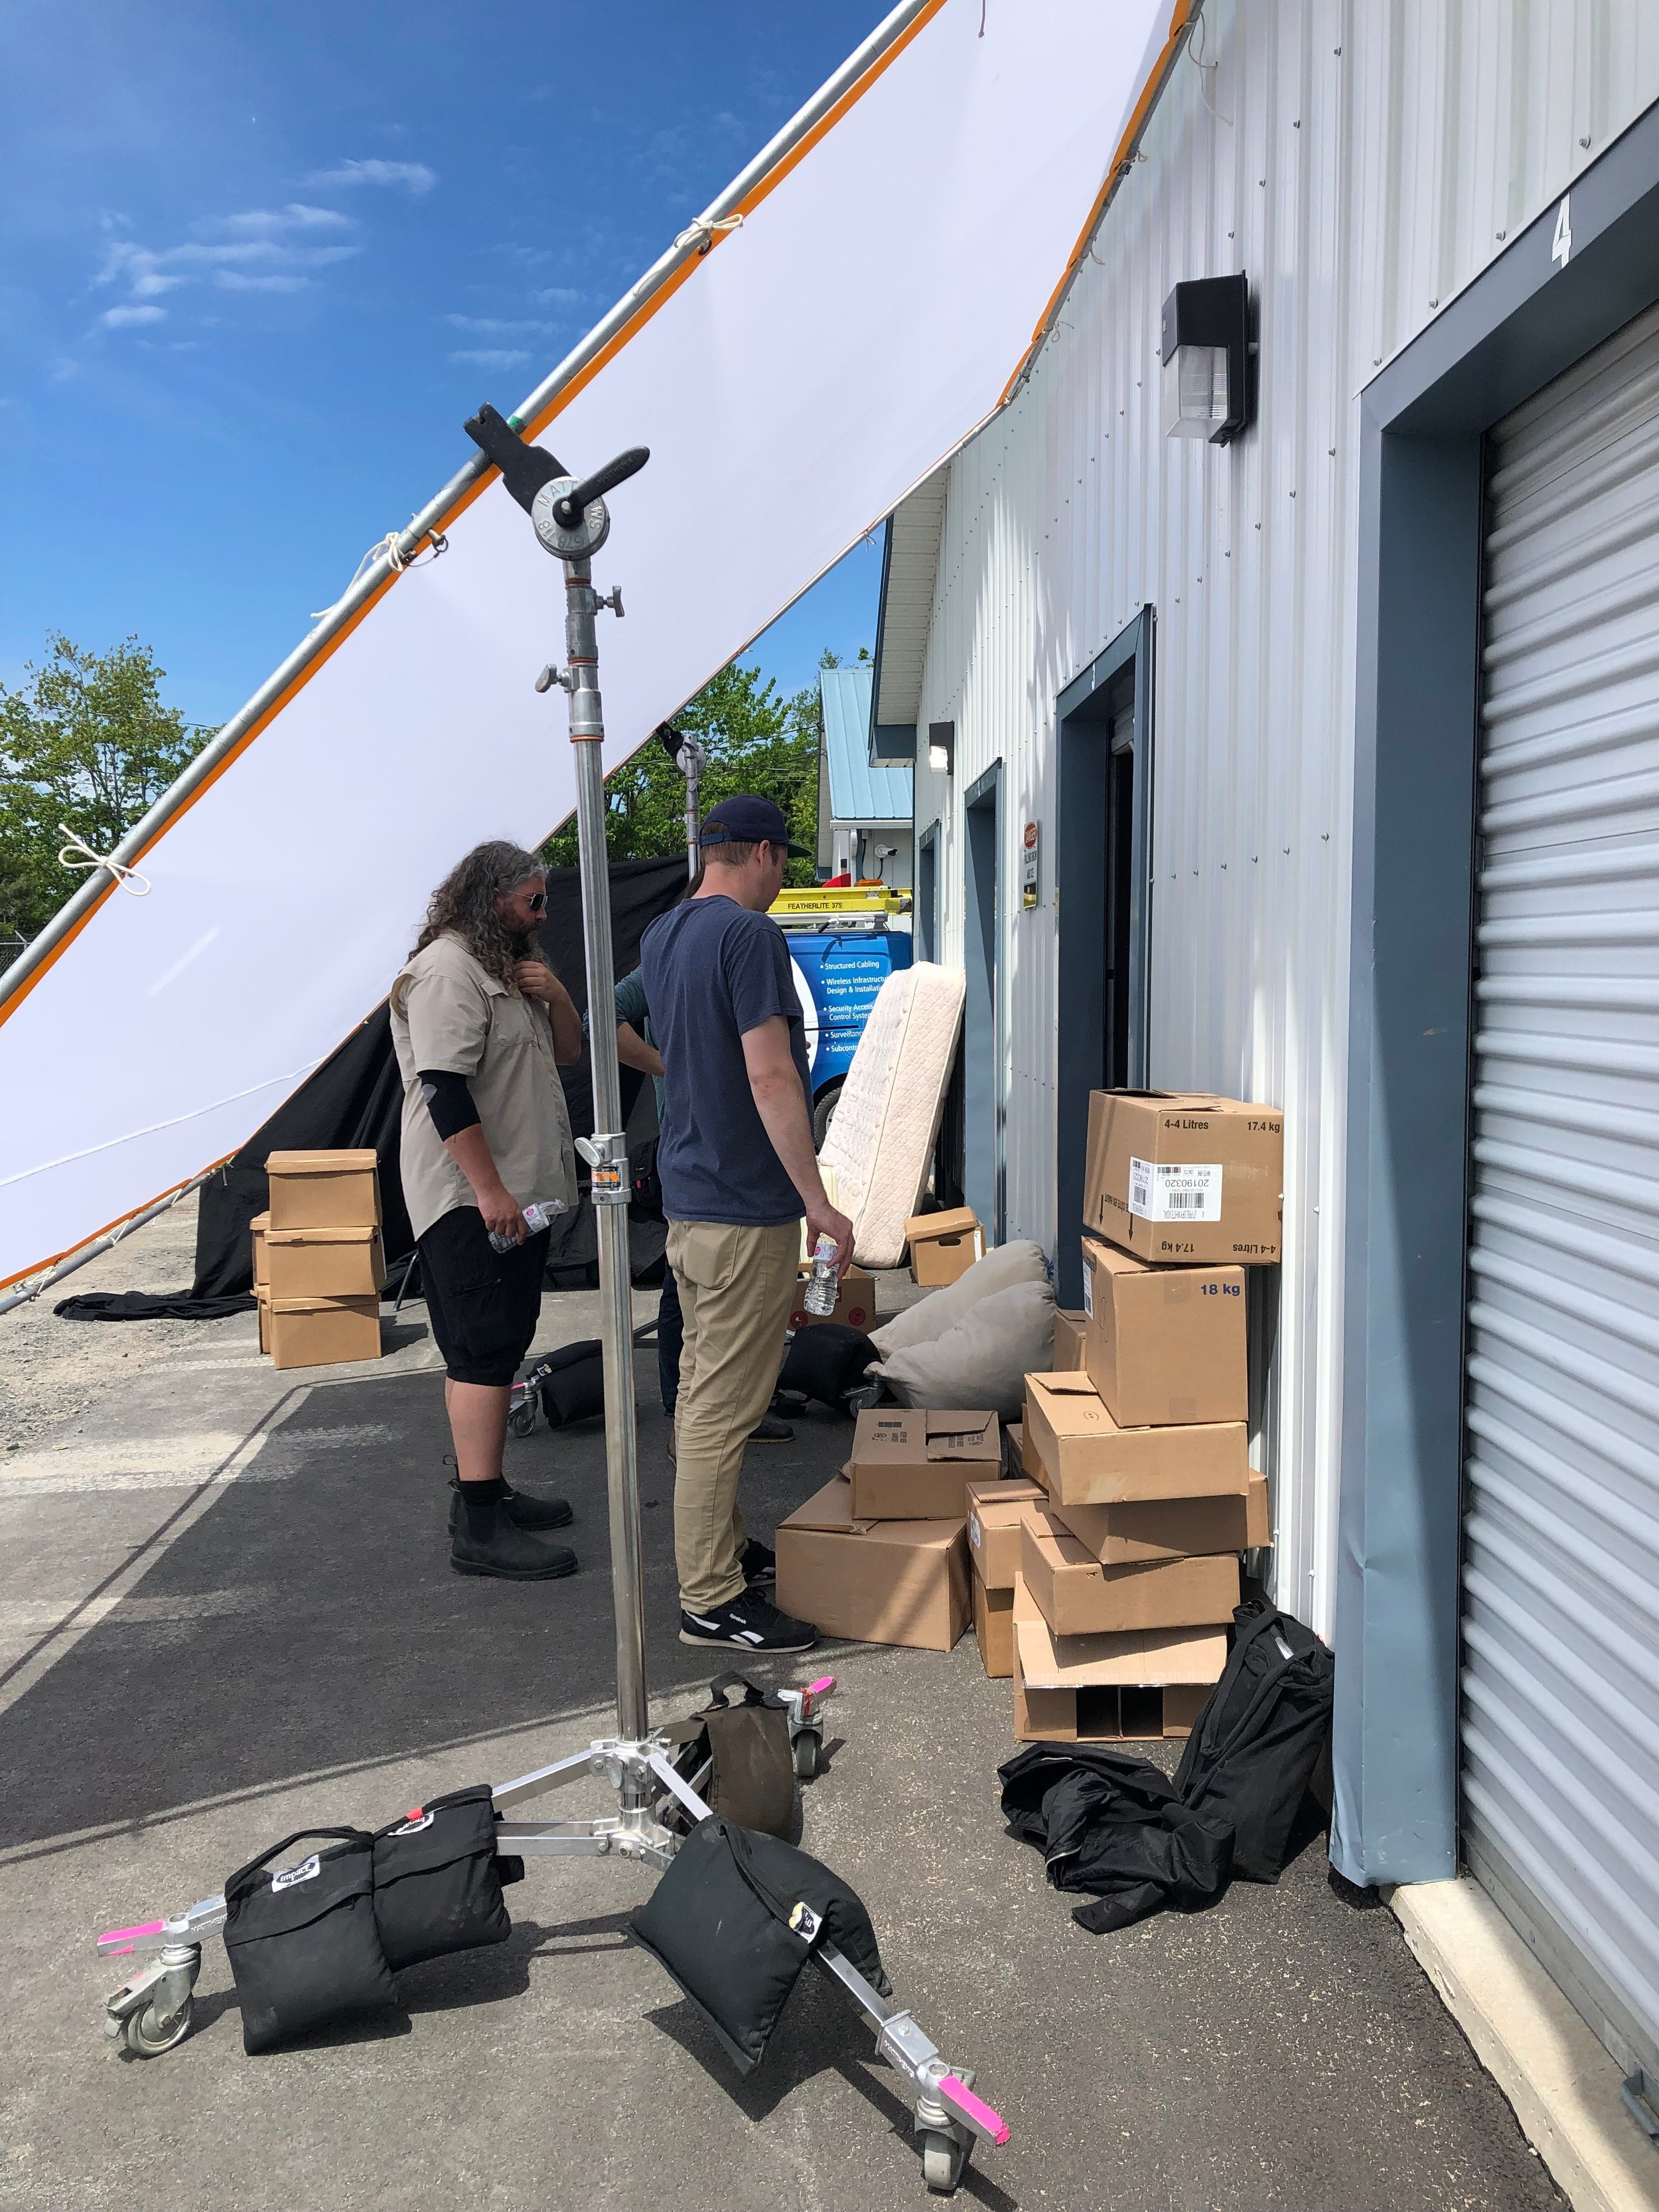 Storage Locker. Lighting and Camera Crew. Laura-Beth Bird. Queen of the Andes 2019.